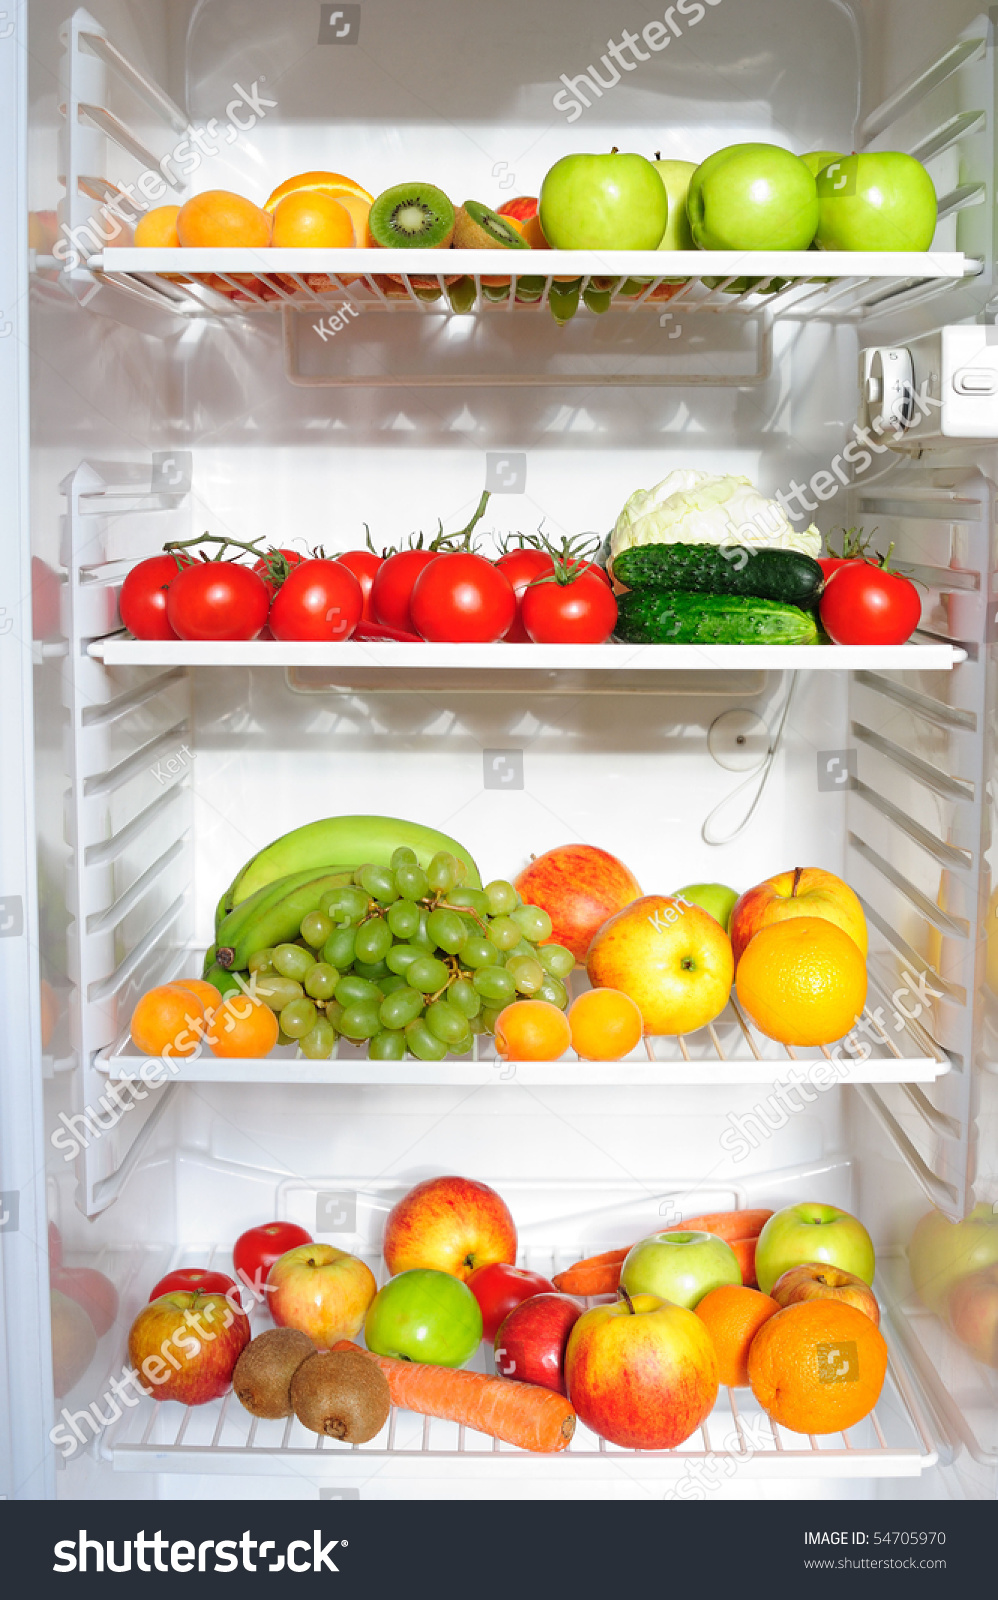 Refrigerator Full Fruit Vegetables Stock Photo Edit Now 54705970